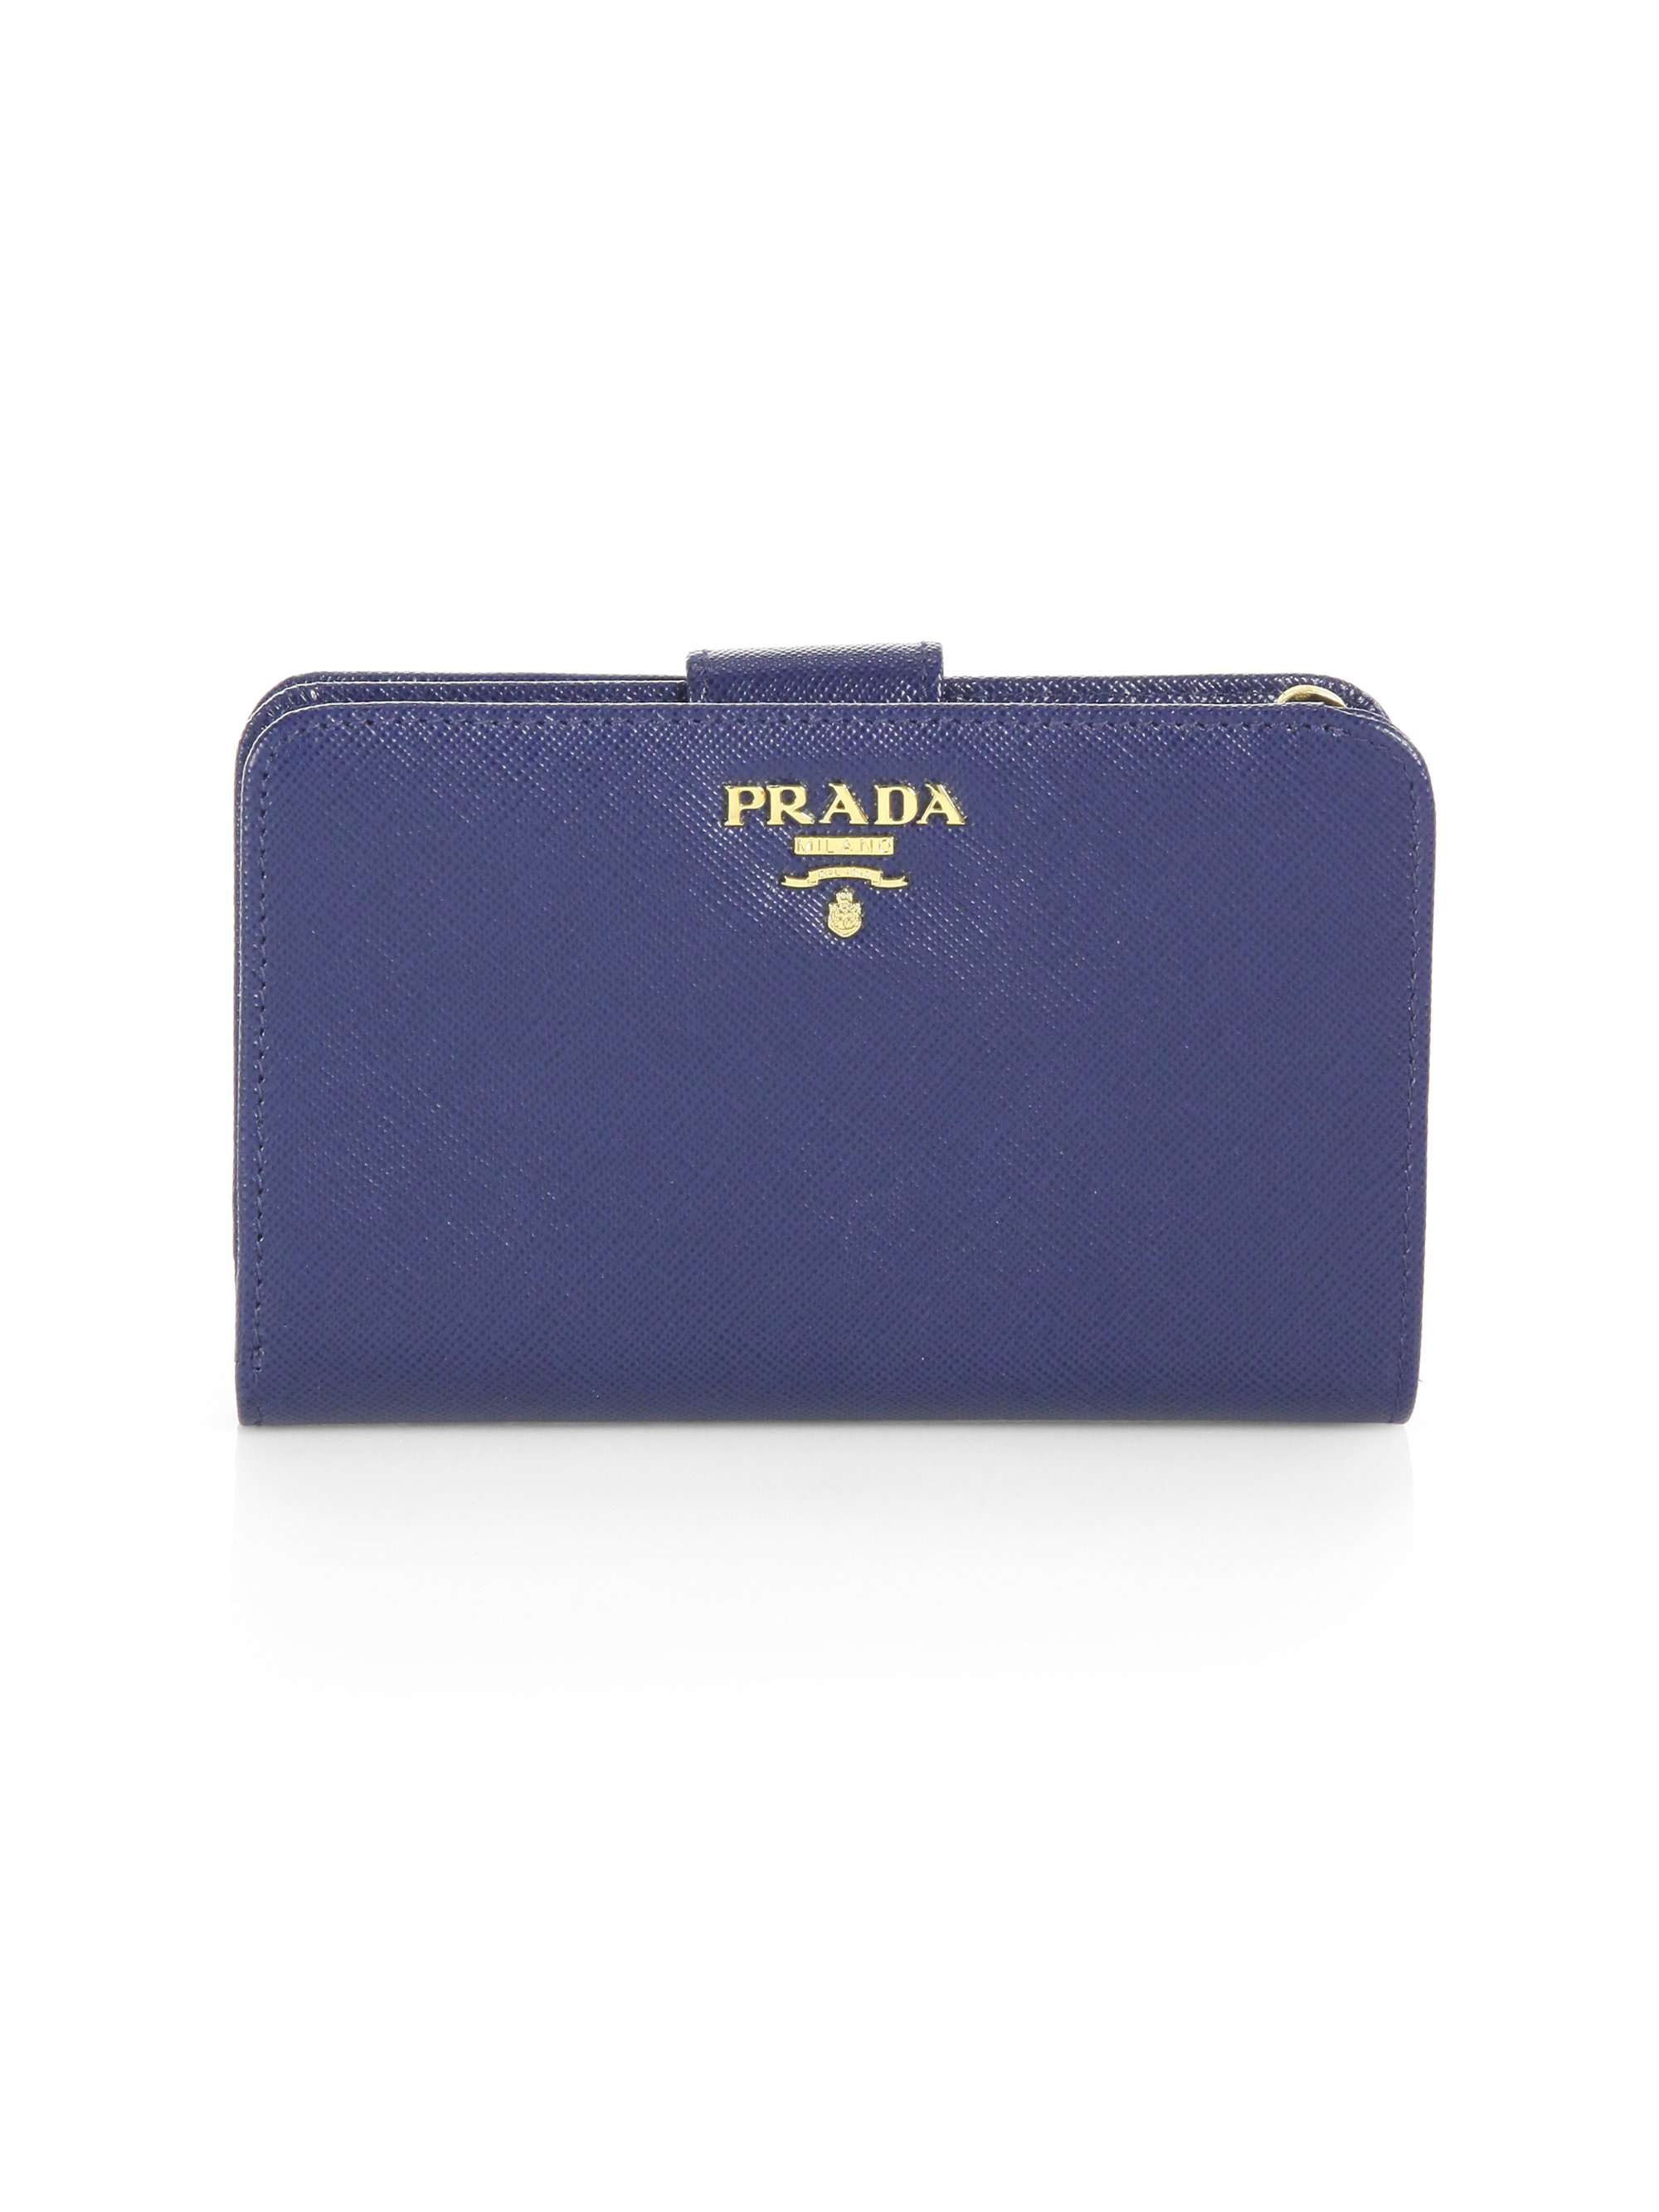 c90c376ad91a Prada Saffiano Leather Wallet Blue | Stanford Center for Opportunity ...